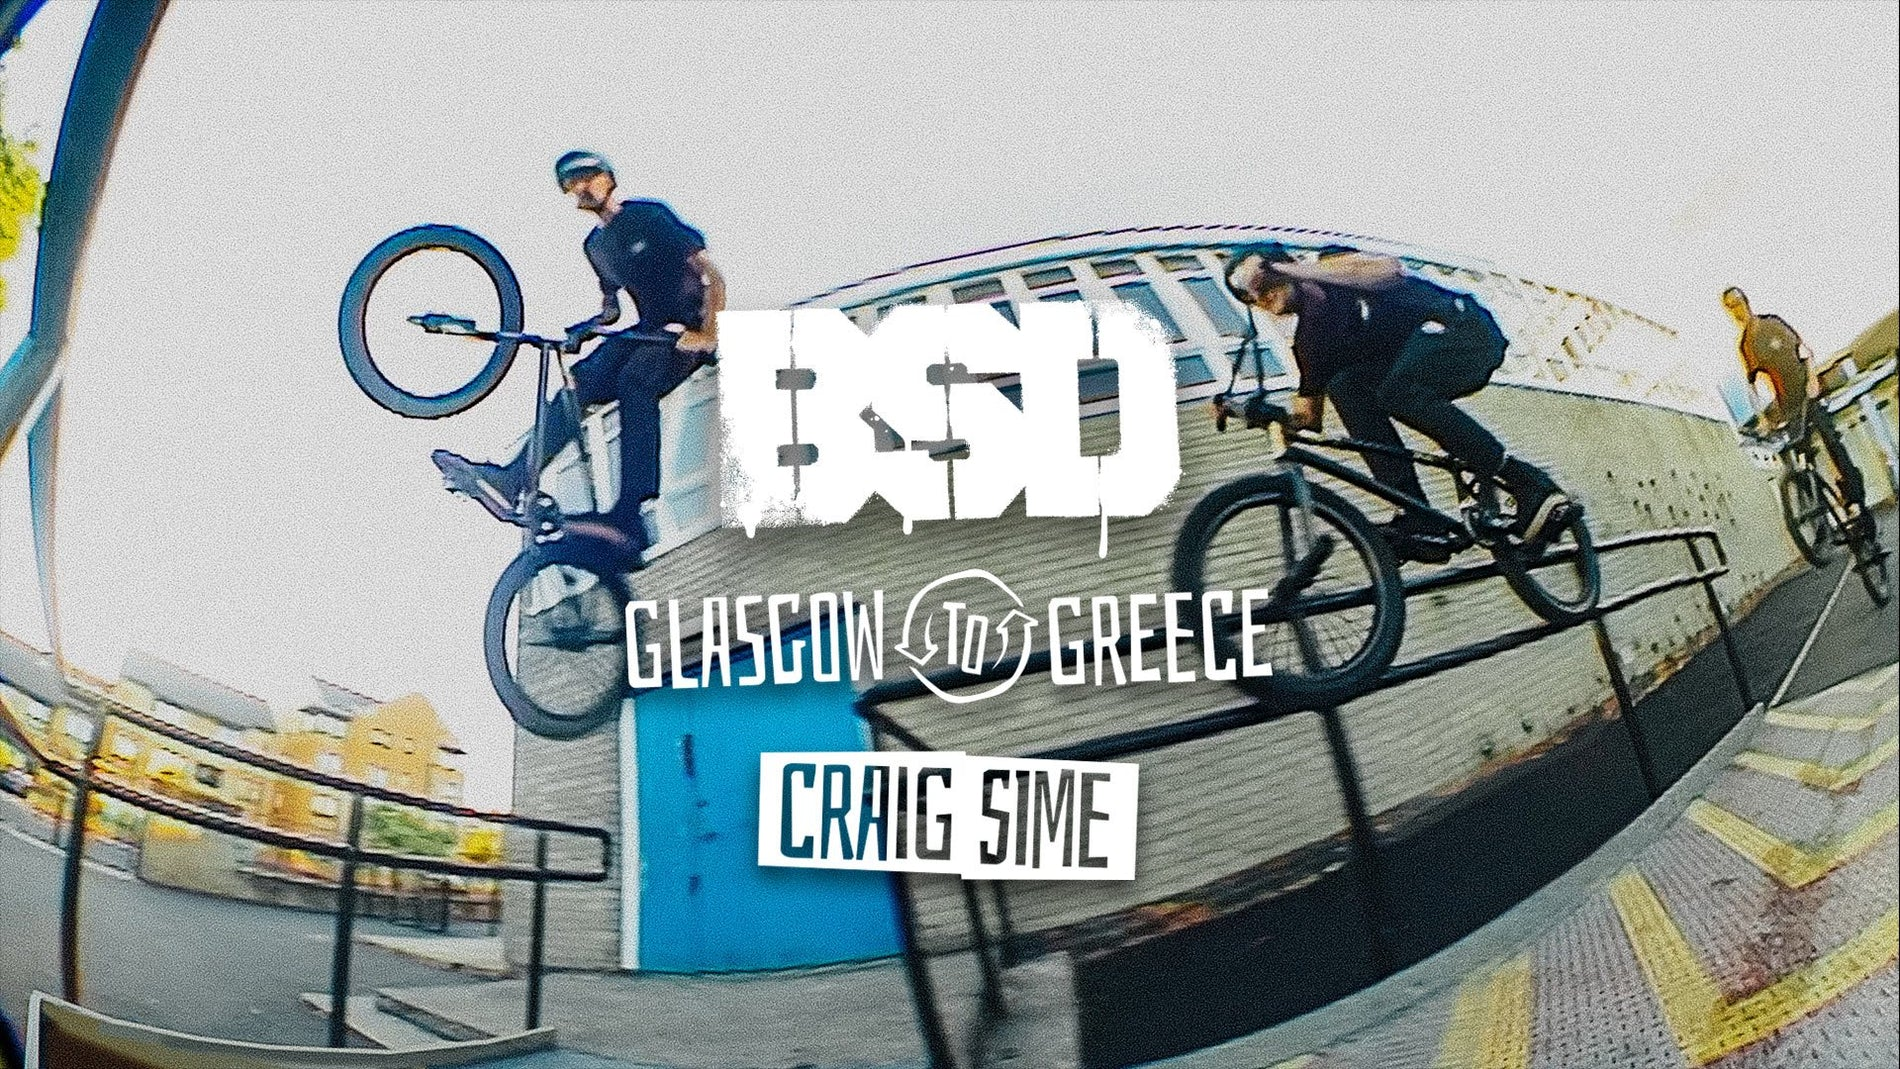 Craig Sime - Glasgow to Greece